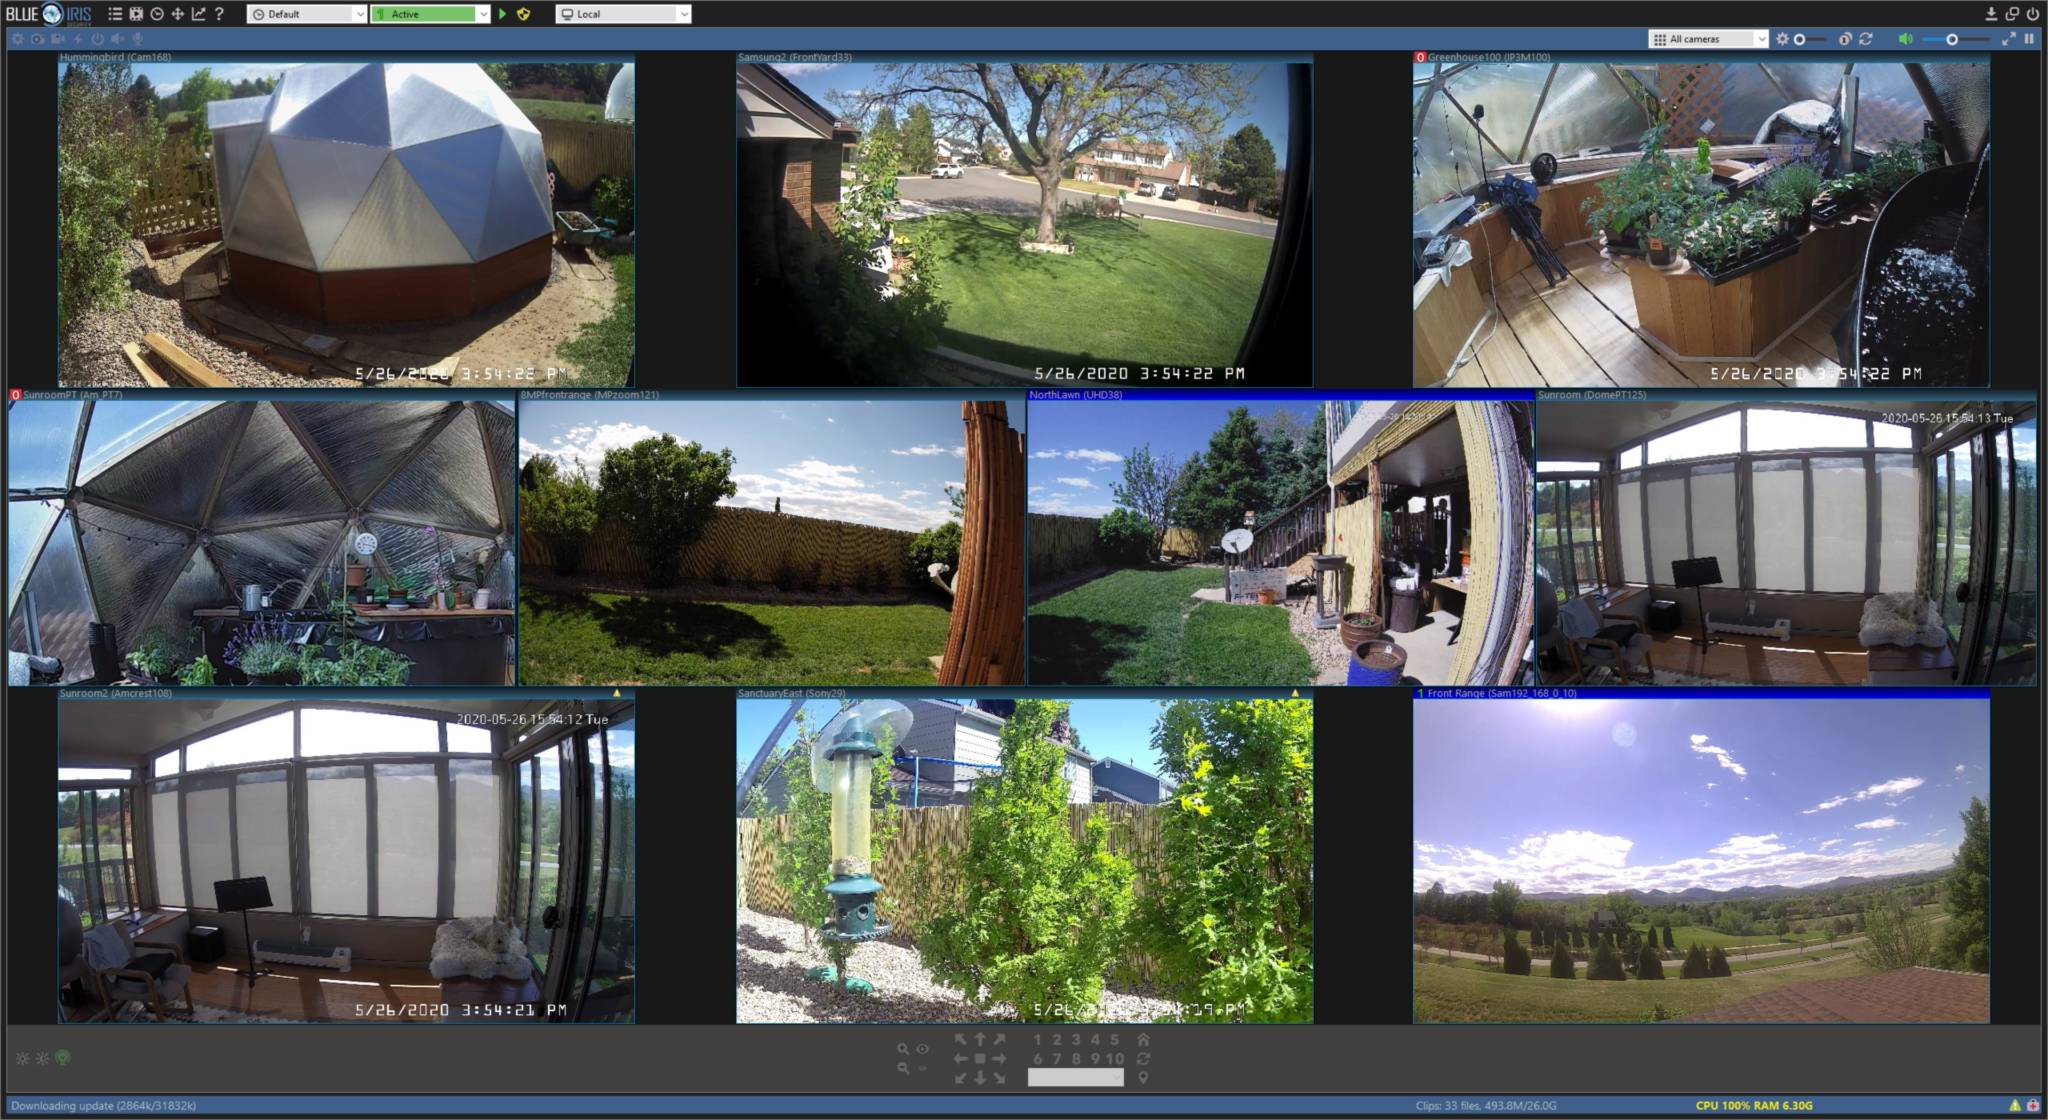 web cam screen shots of automated greenhouse